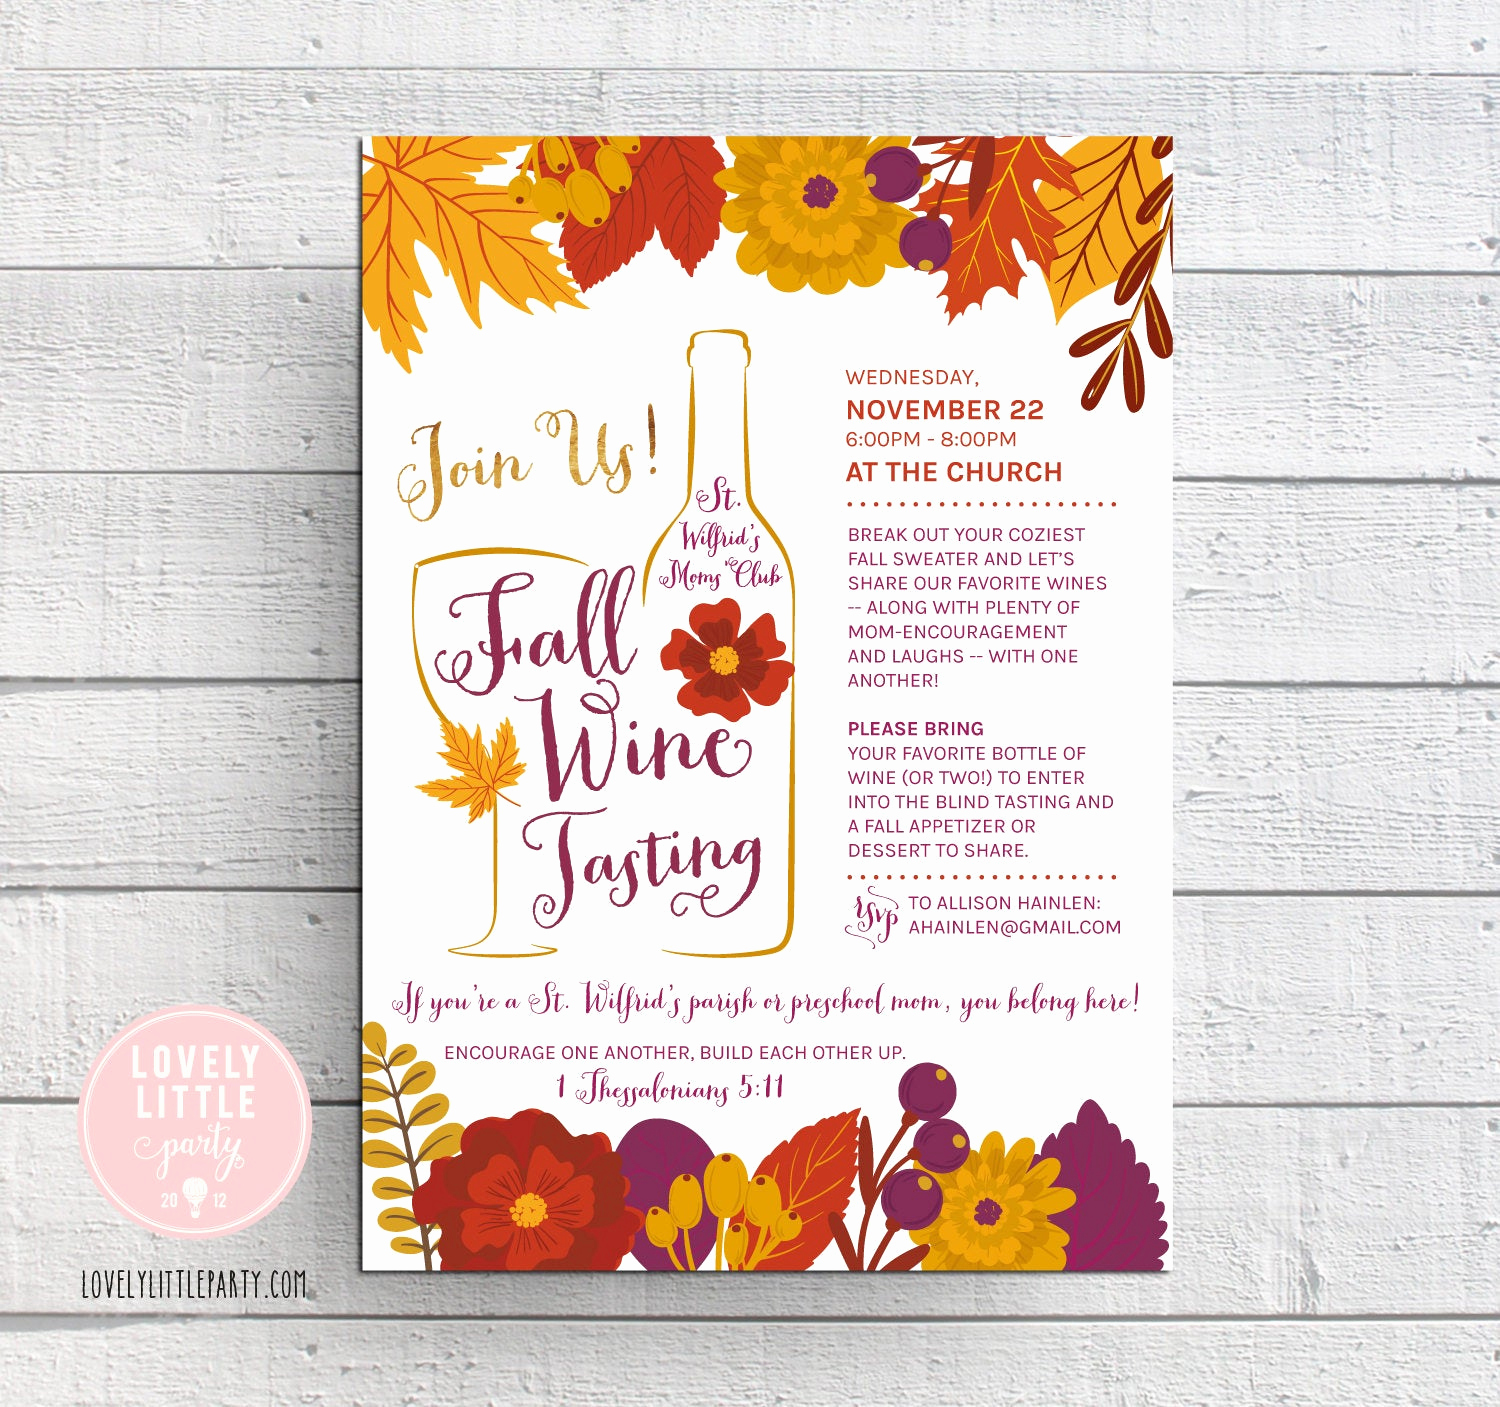 Moms Night Out Invitation Elegant Wine Tasting Invitation Fall Wine Tasting Fall Moms Night